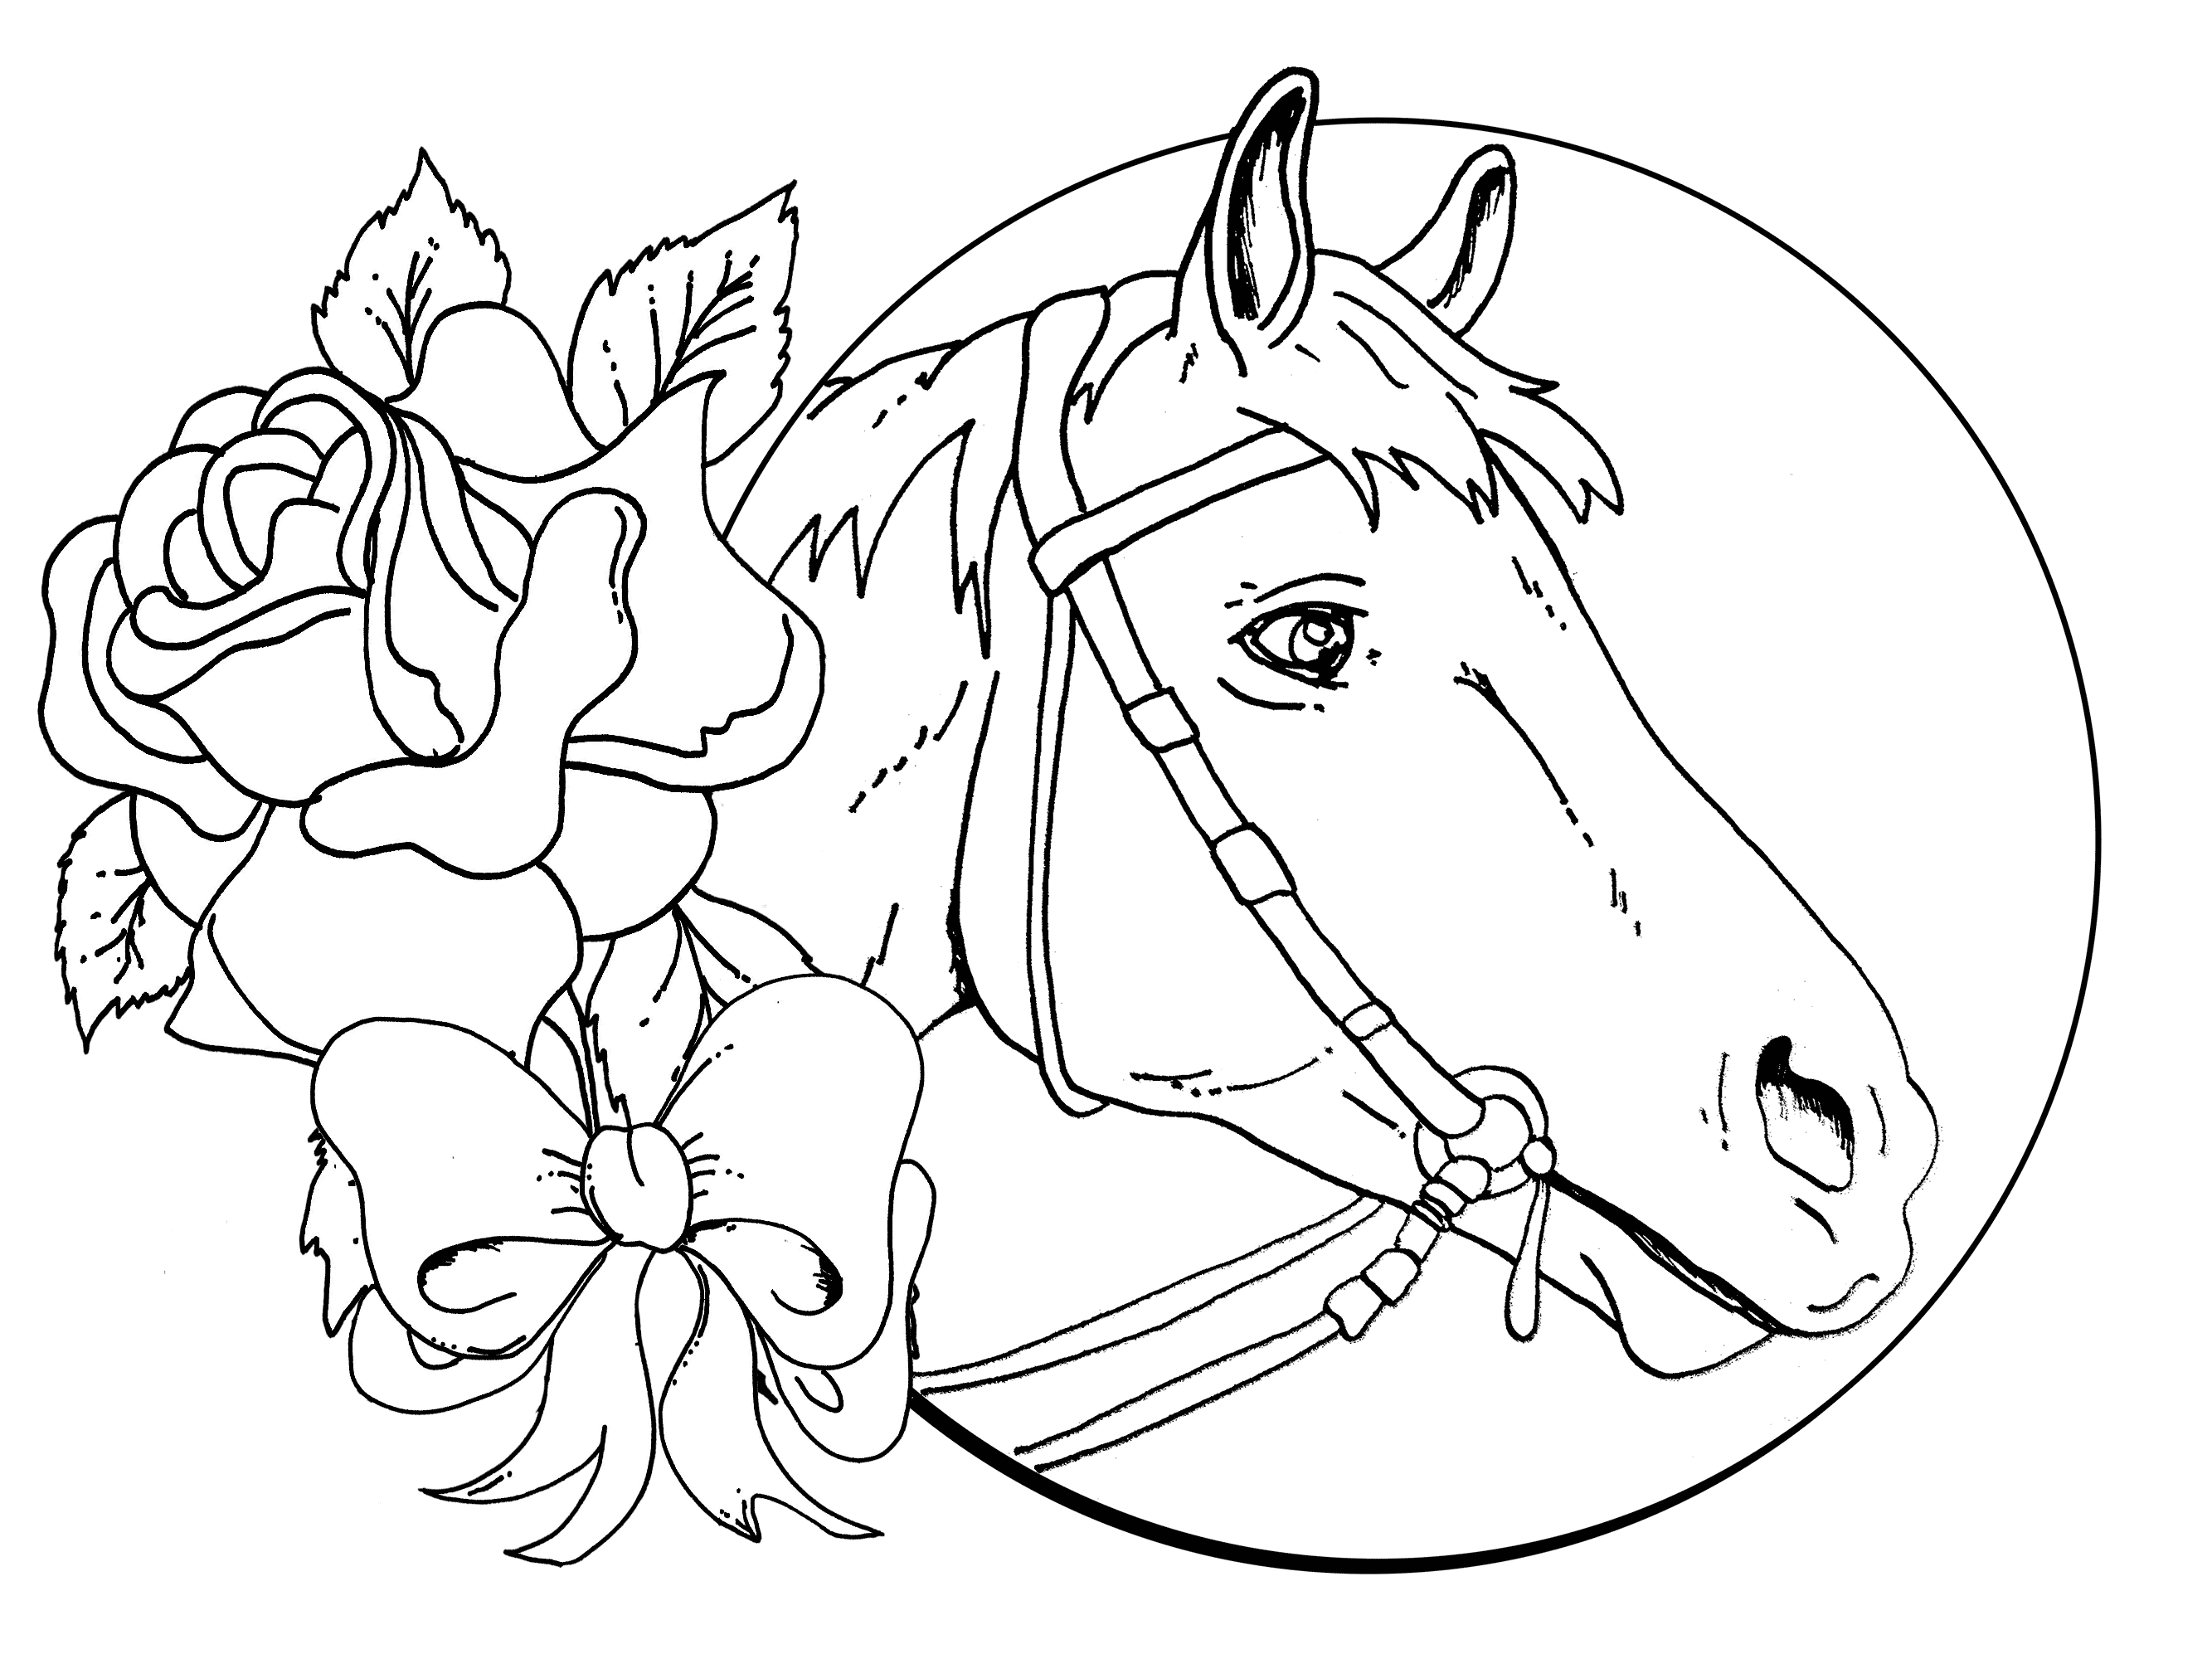 printable coloring sheets for girls coloring now blog archive printable coloring pages for for sheets coloring printable girls